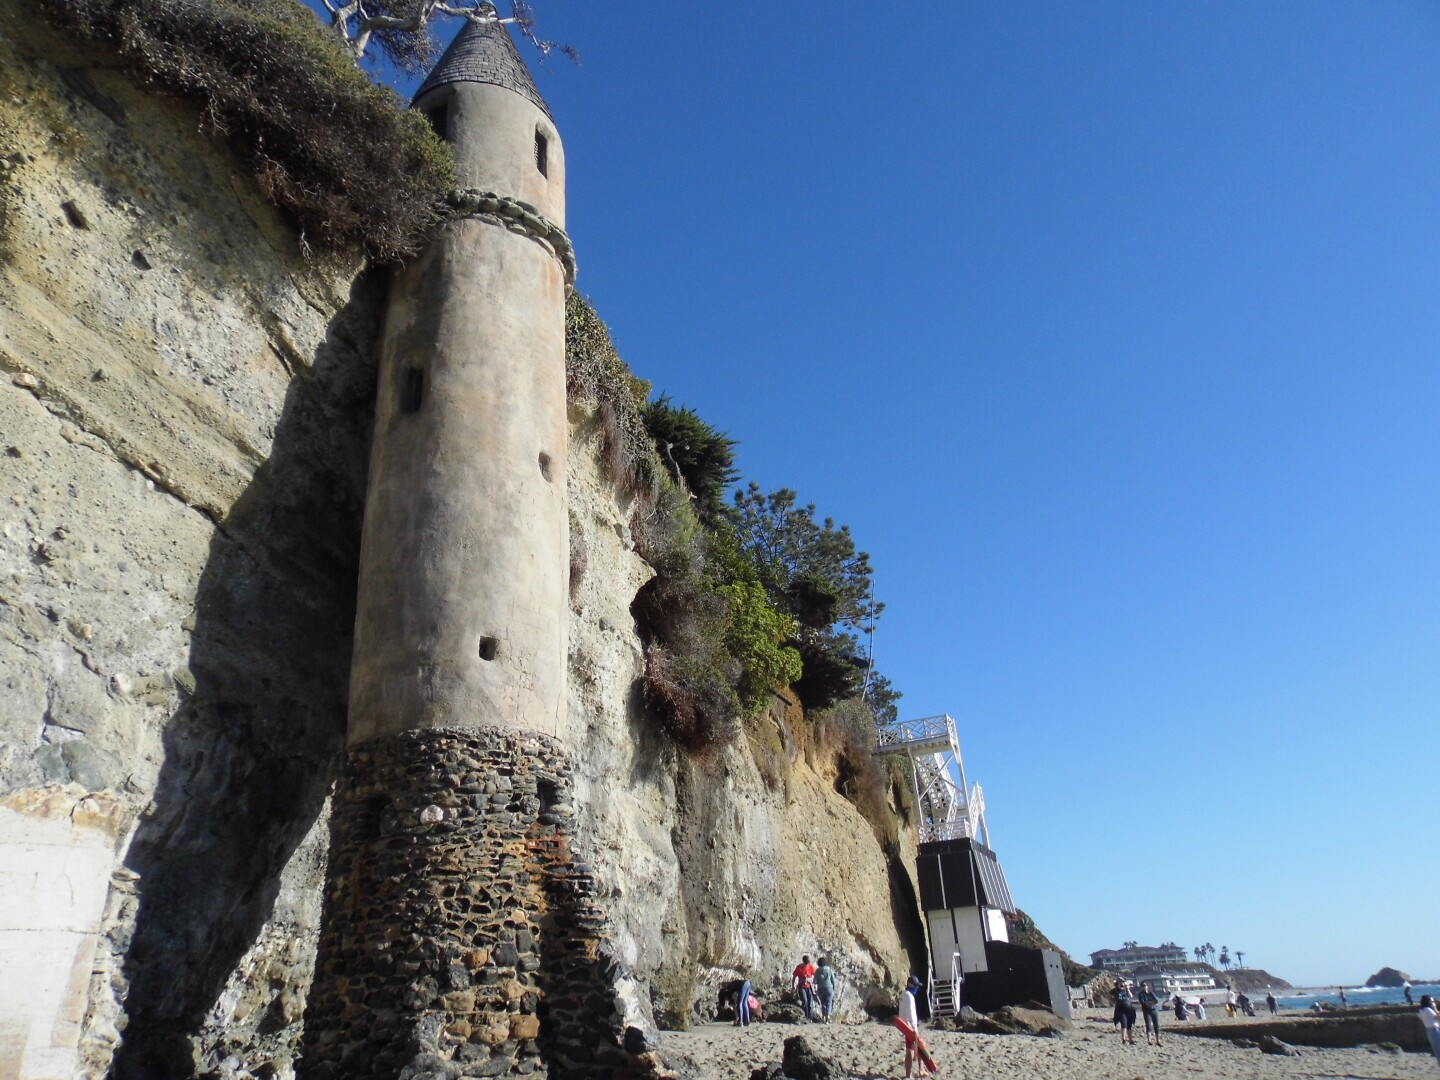 Locals walk along the coast of Victoria Beach as the medieval-looking tower stands over them.